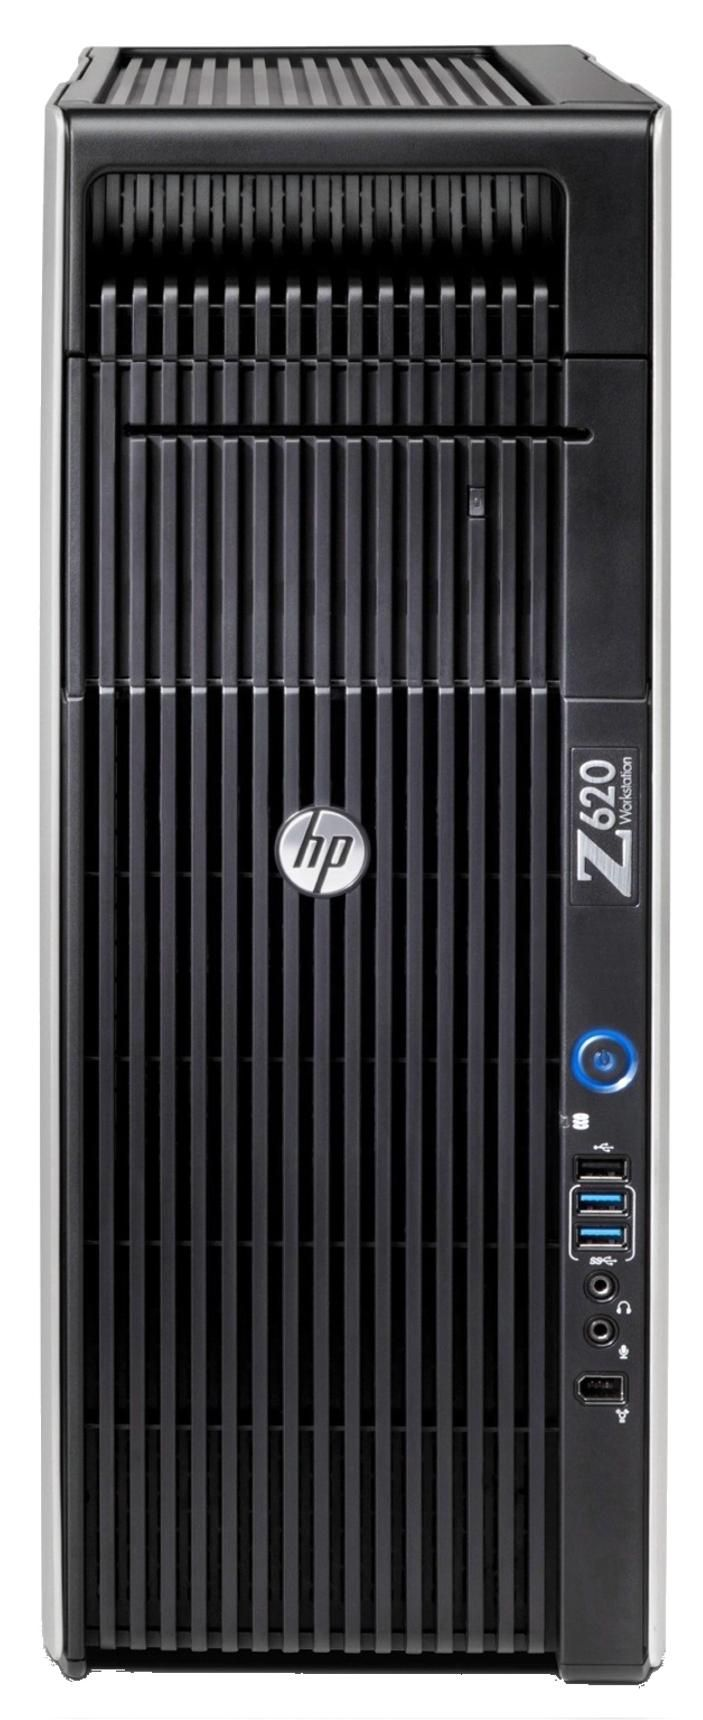 HP Z620 Workstation Xeon E5 (2620 v2) 2.1GHz 16GB 1TB DVD±RW LAN Windows 7 Pro 64-bit+Media Upgrade to Windows 8.1 Pro 64-bit (no graphics card)